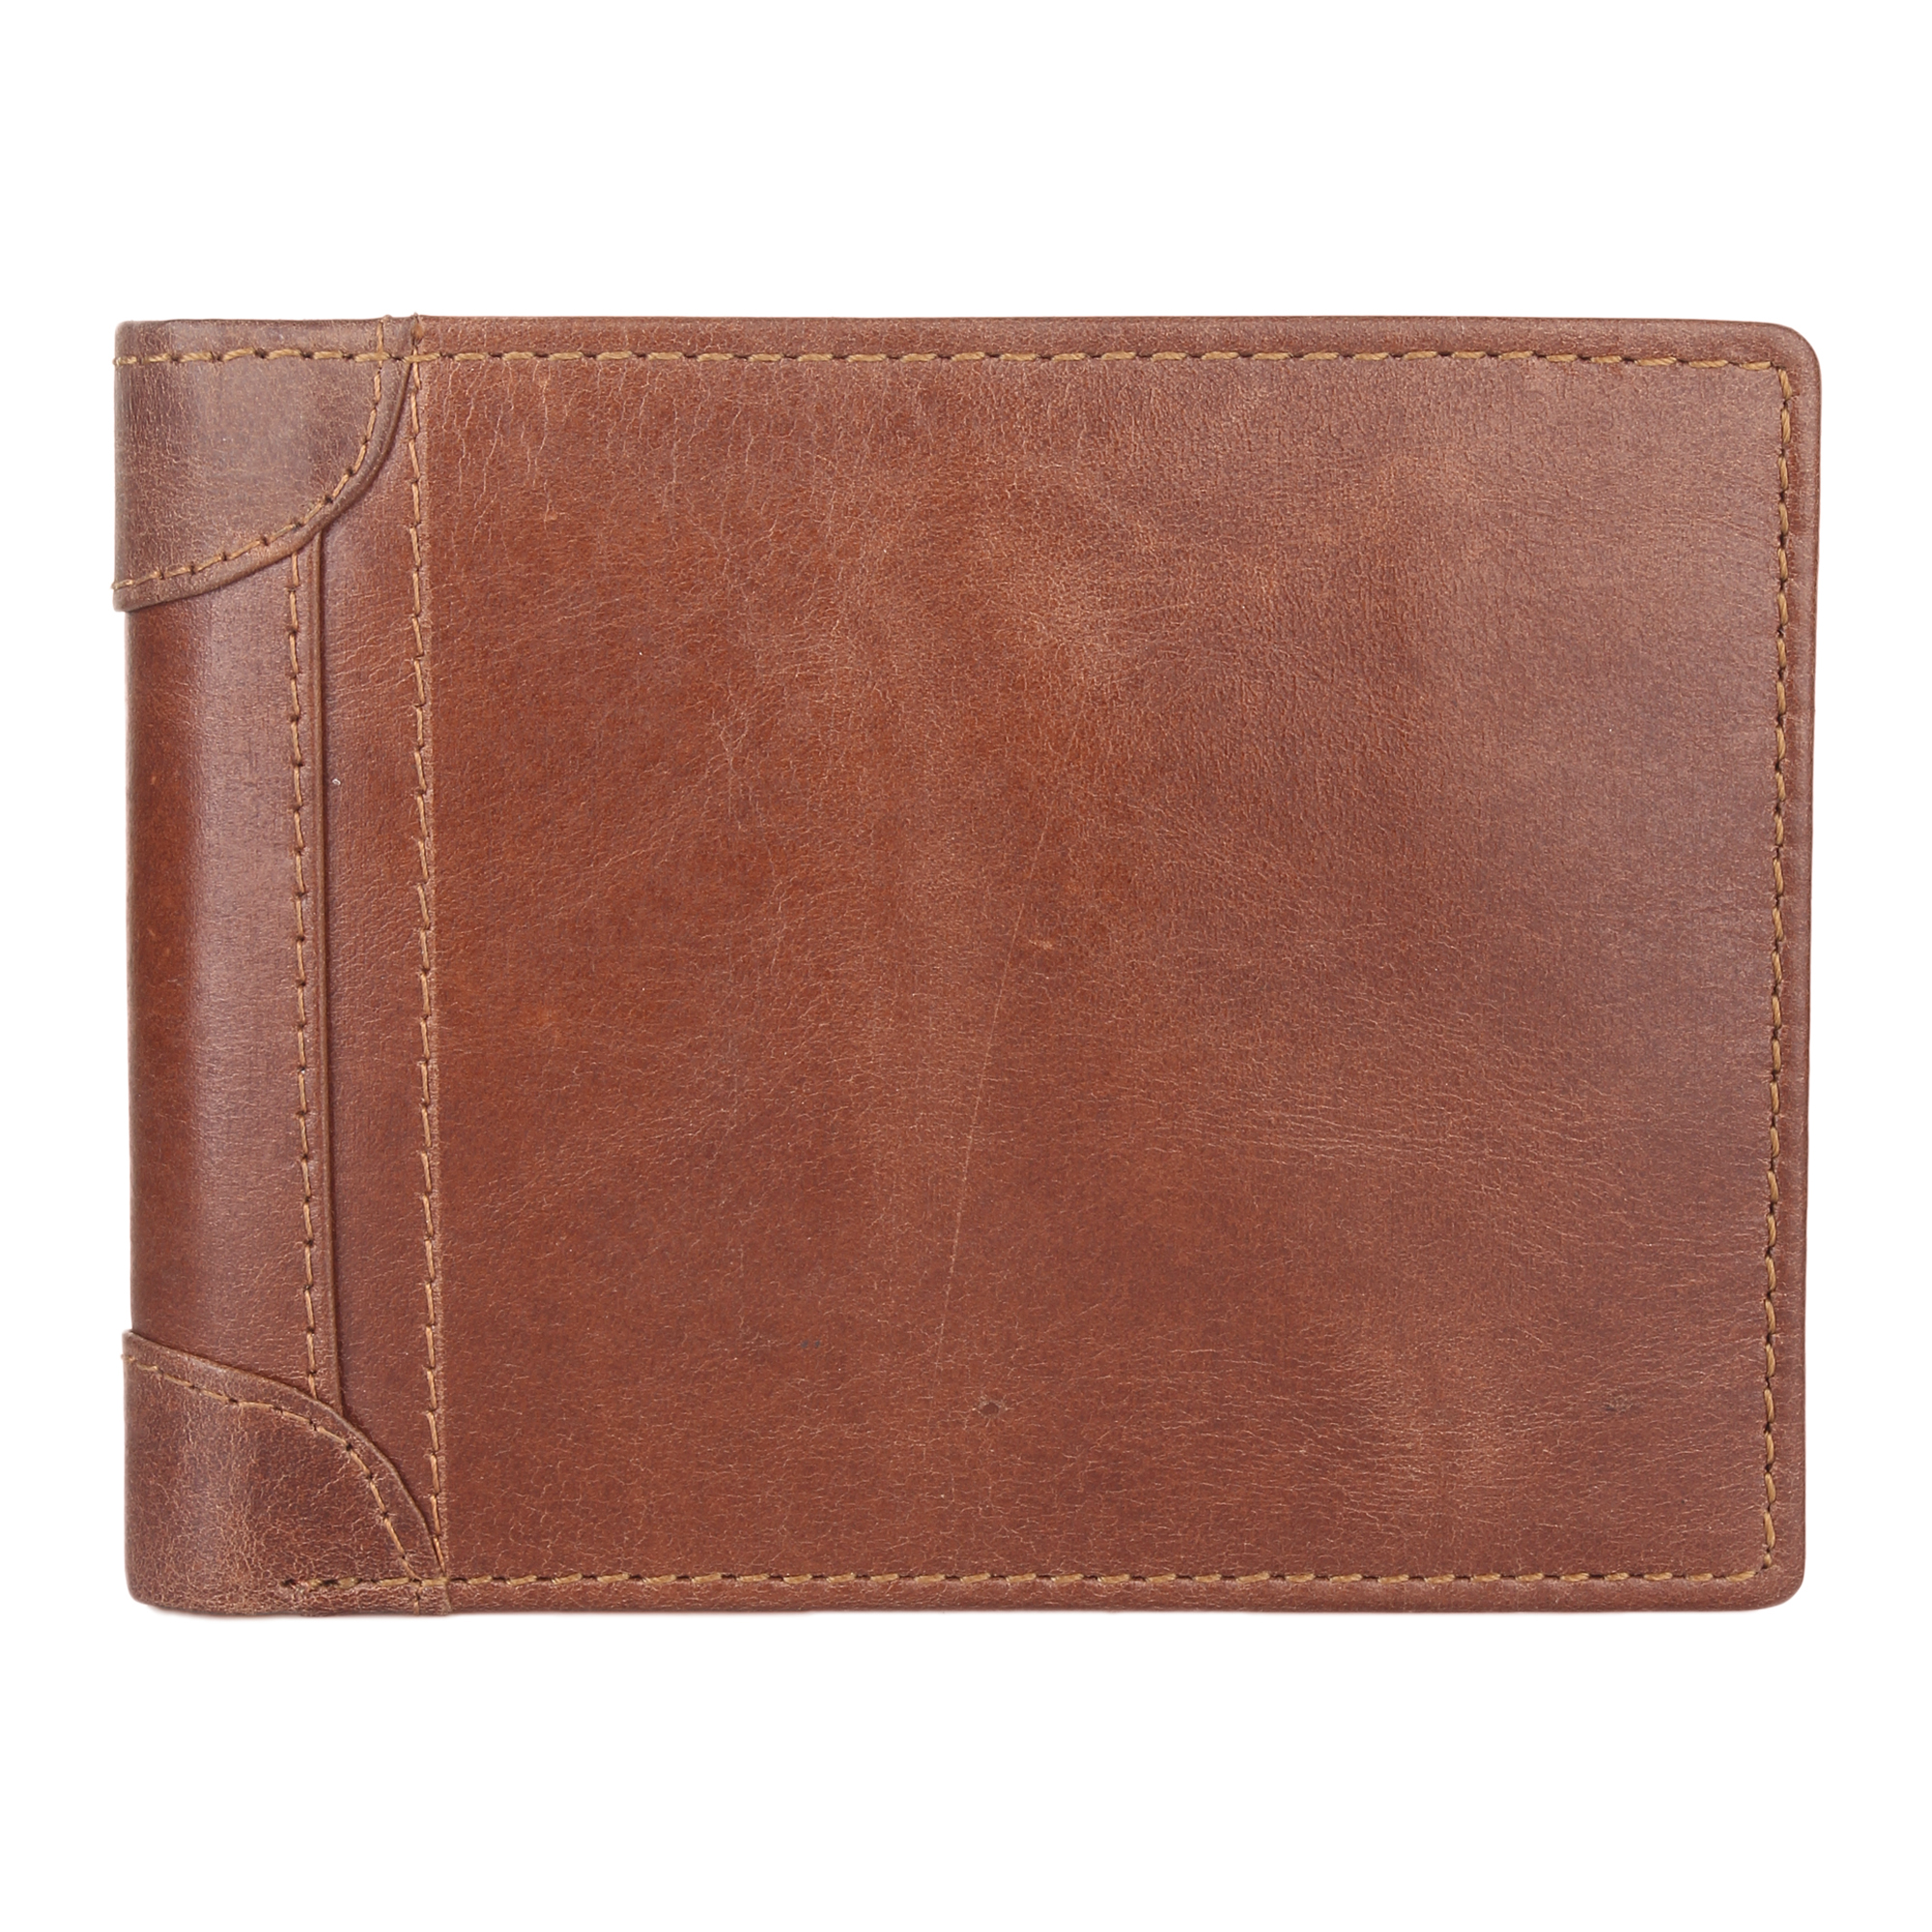 Leather Wallets Manufacturers in Ukraine, Leather Wallets Suppliers in Ukraine, Leather Wallets Wholesalers in Ukraine, Leather Wallets Traders in Ukraine, custom leather wallet manufacturers in Ukraine, Leathe